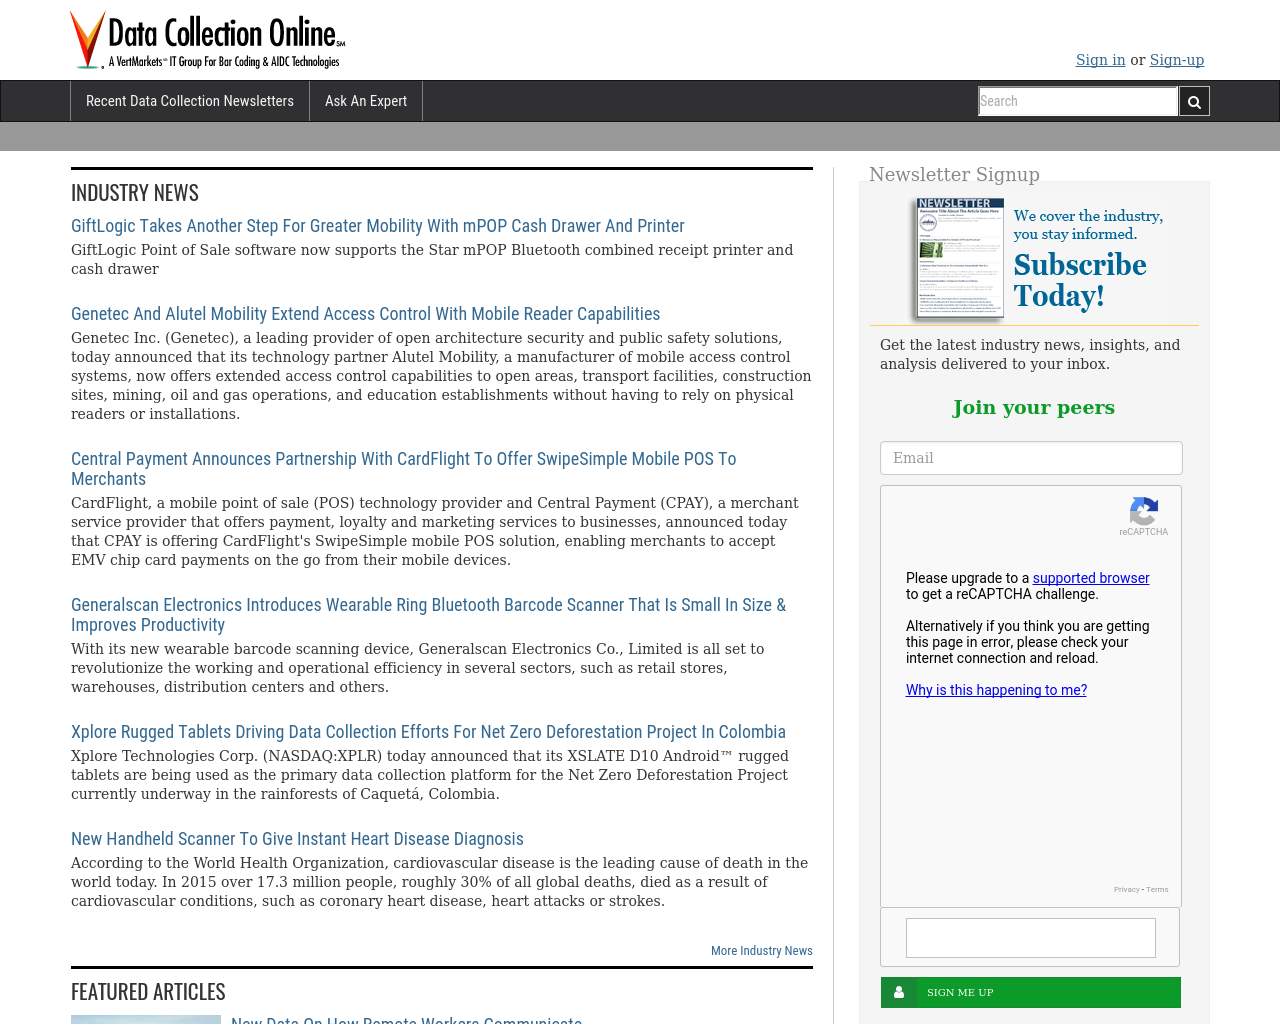 Data-Collection-Online-Advertising-Reviews-Pricing